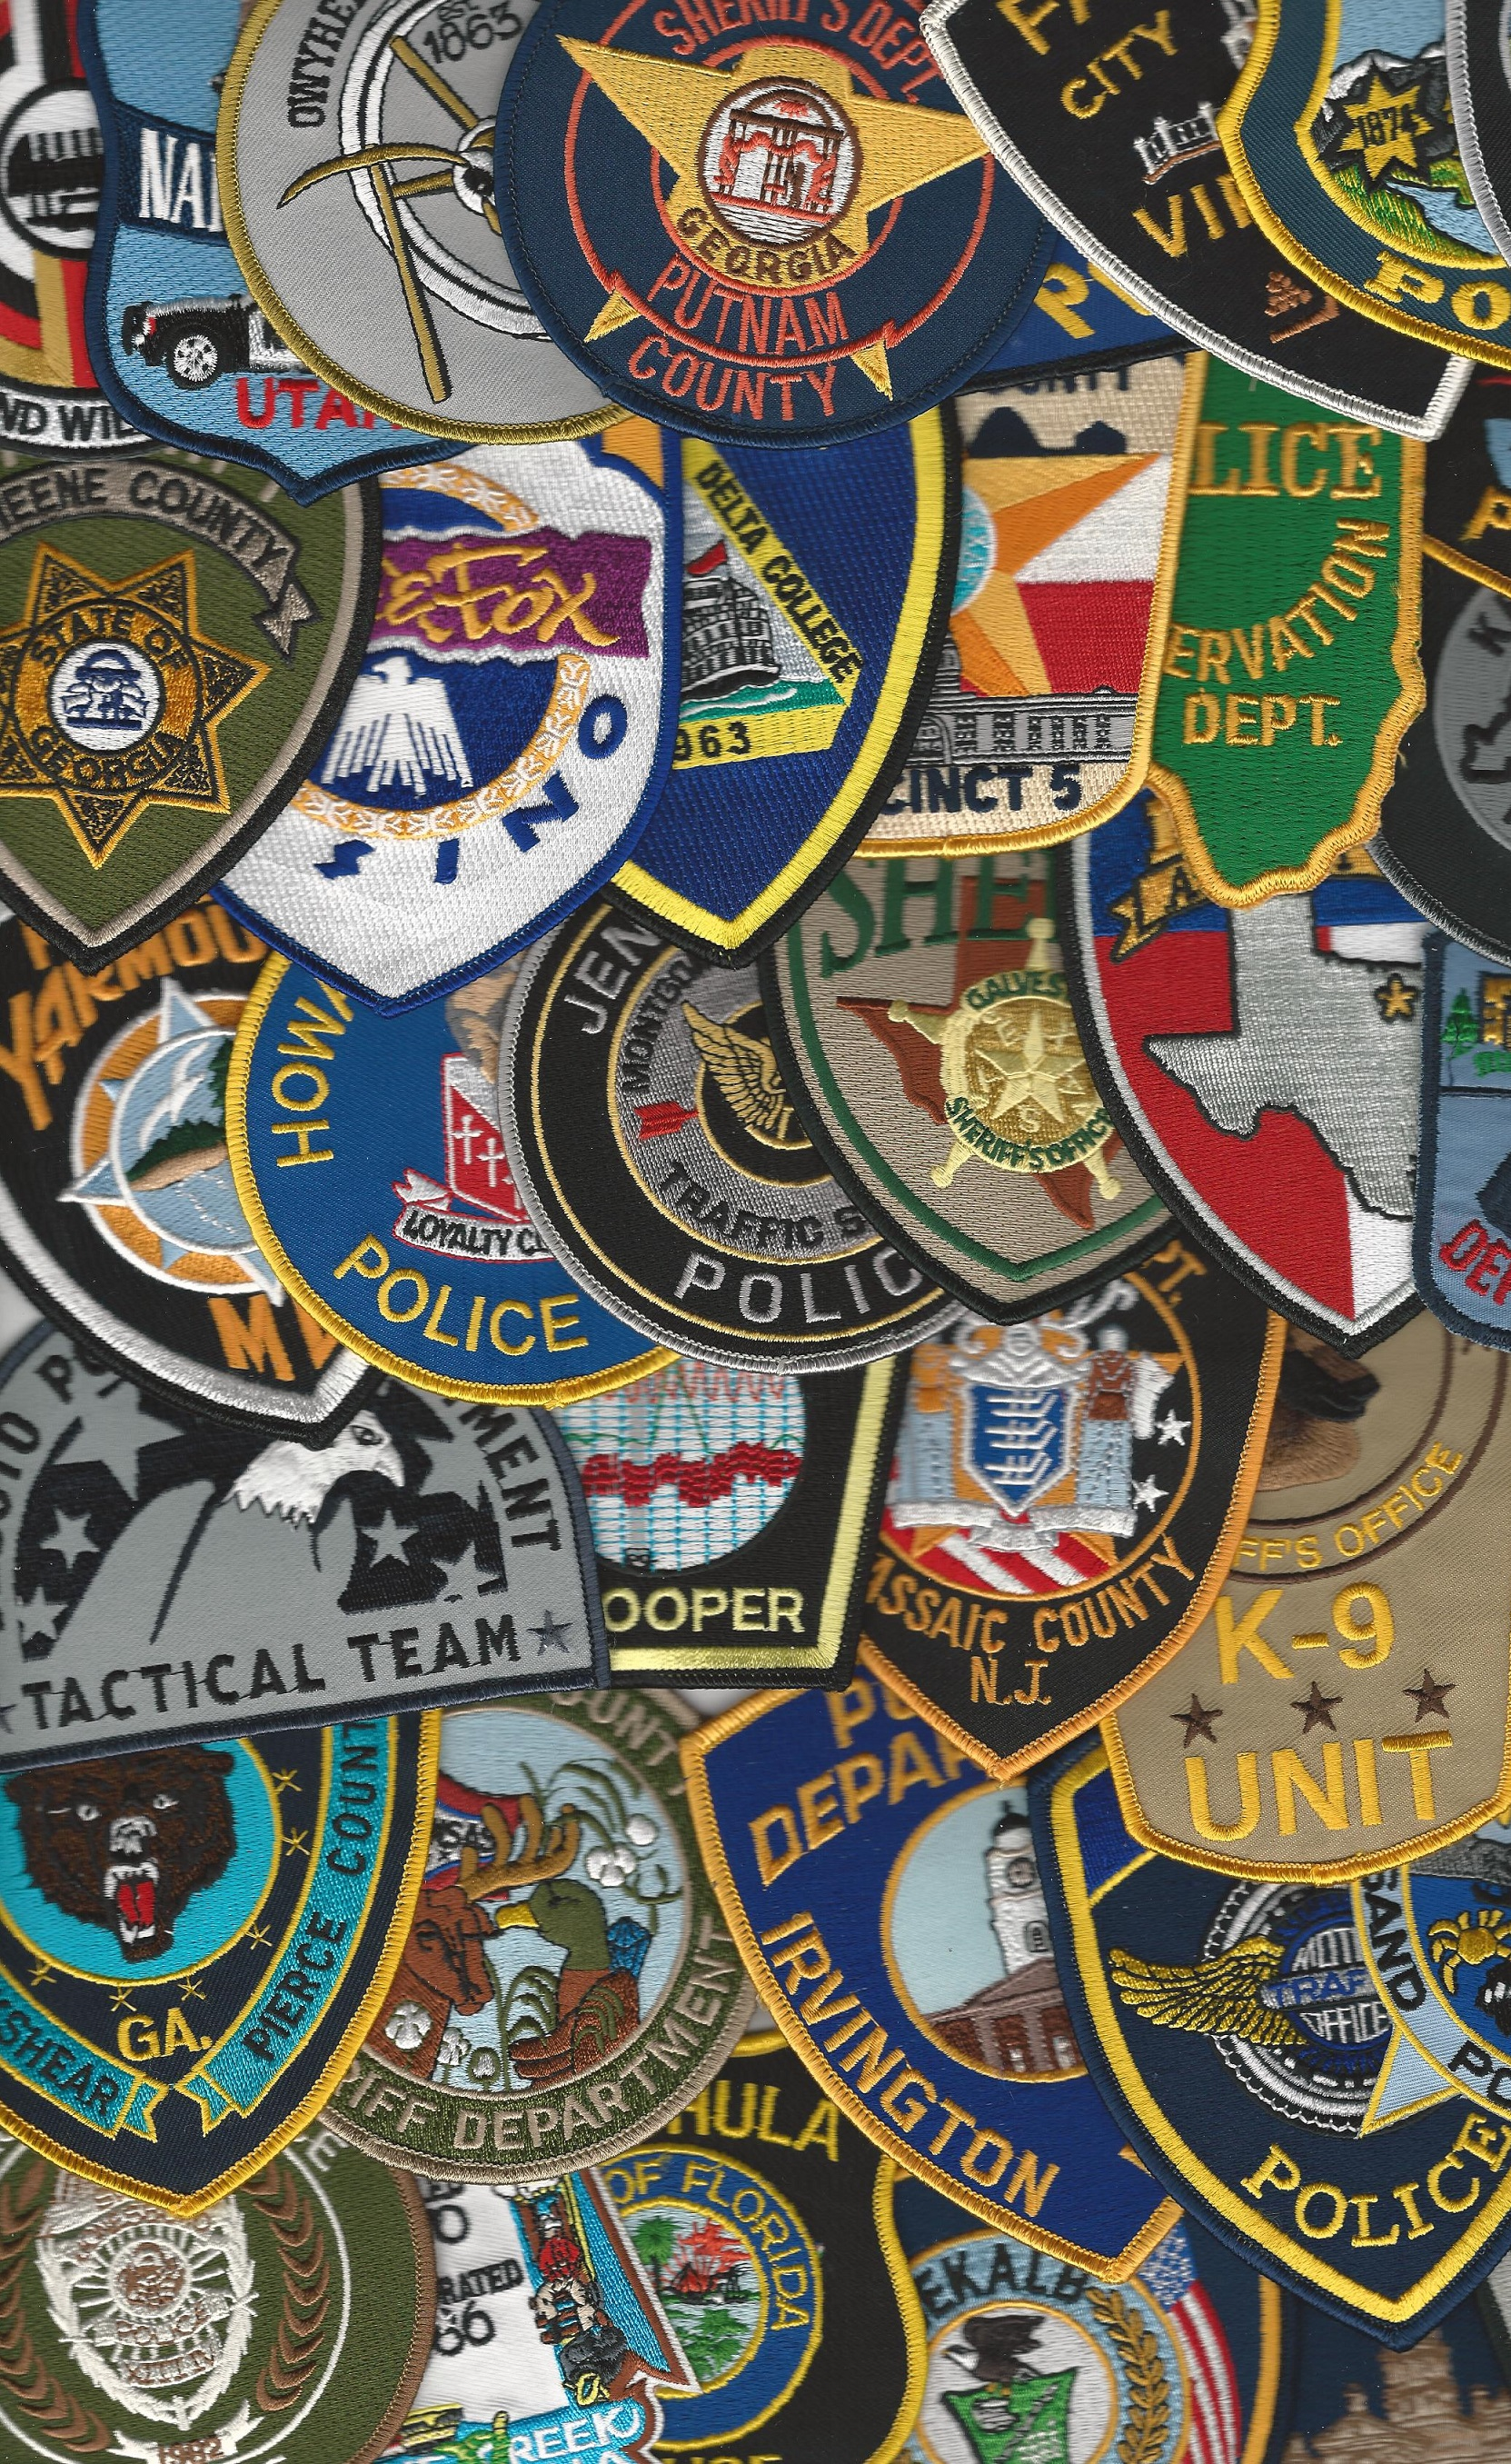 Set 100 NEW Assorted US Police Sheriff patches